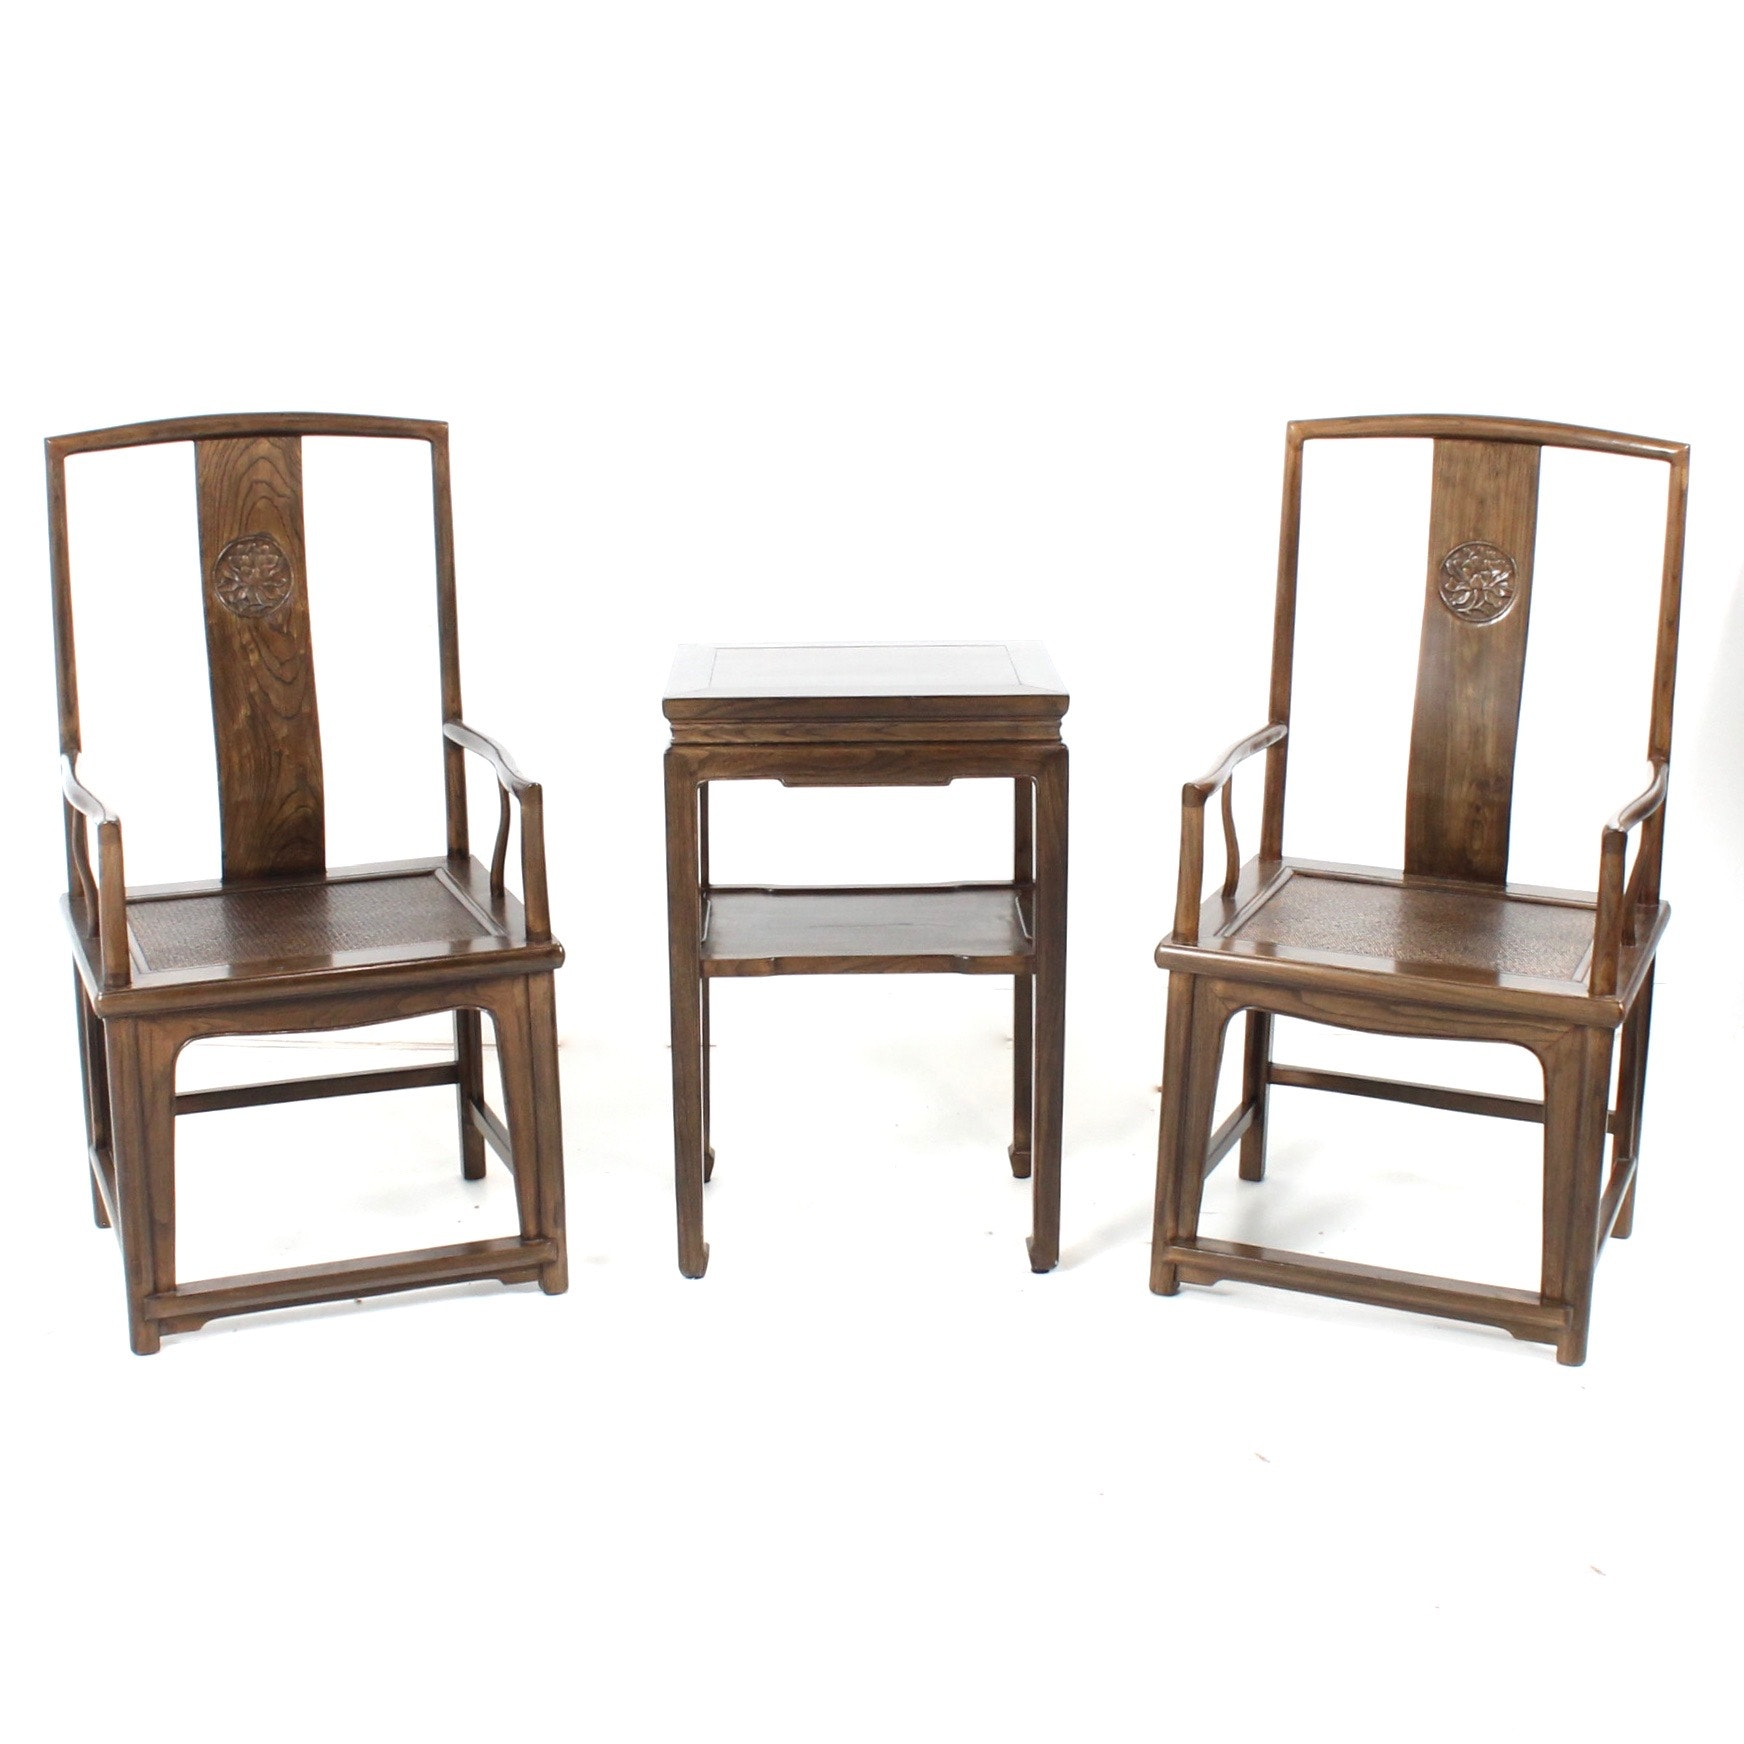 Antique Chinese Scholar's Chairs and Accent Table